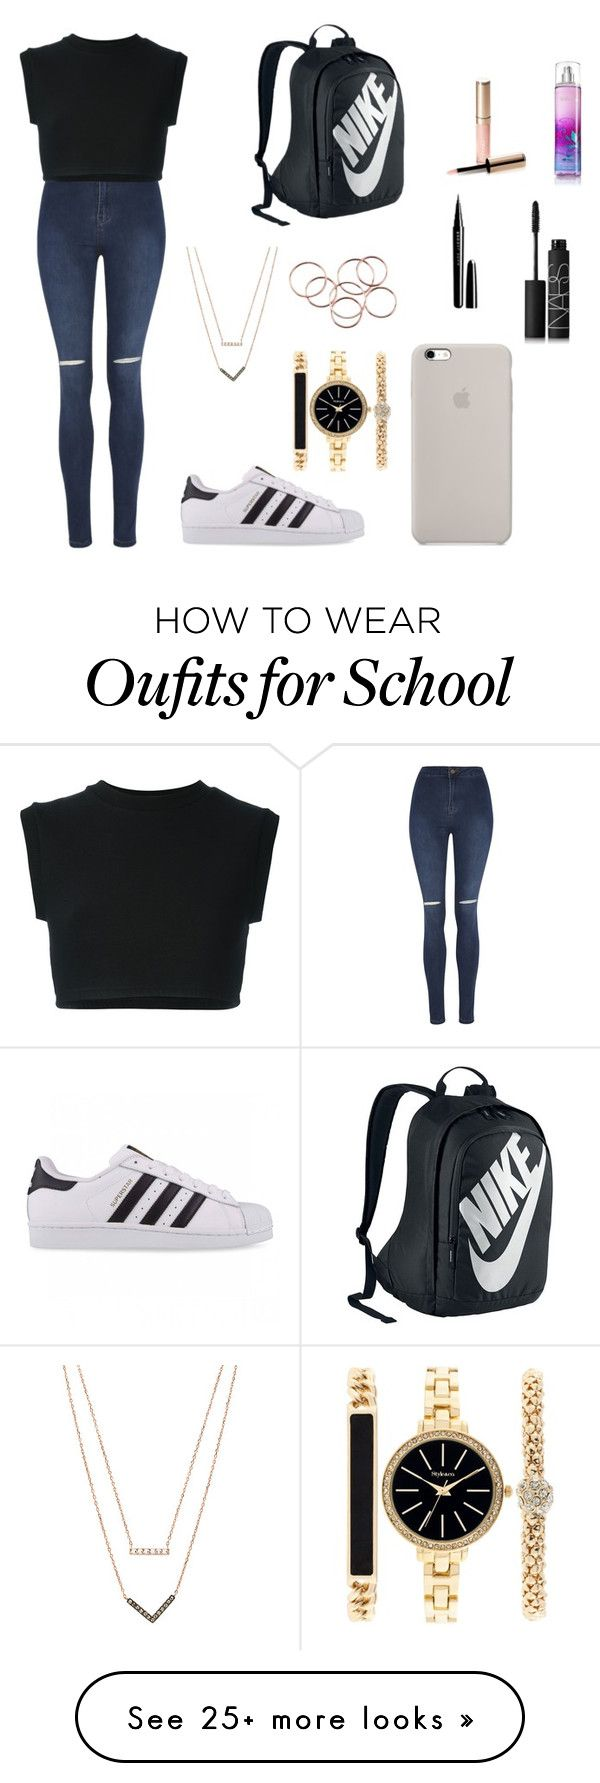 """""""school"""" by ajna-bajrami on Polyvore featuring George, adidas Originals, NIKE, Michael Kors, Style & Co., By Terry, Marc Jacobs and NARS Cosmetics"""